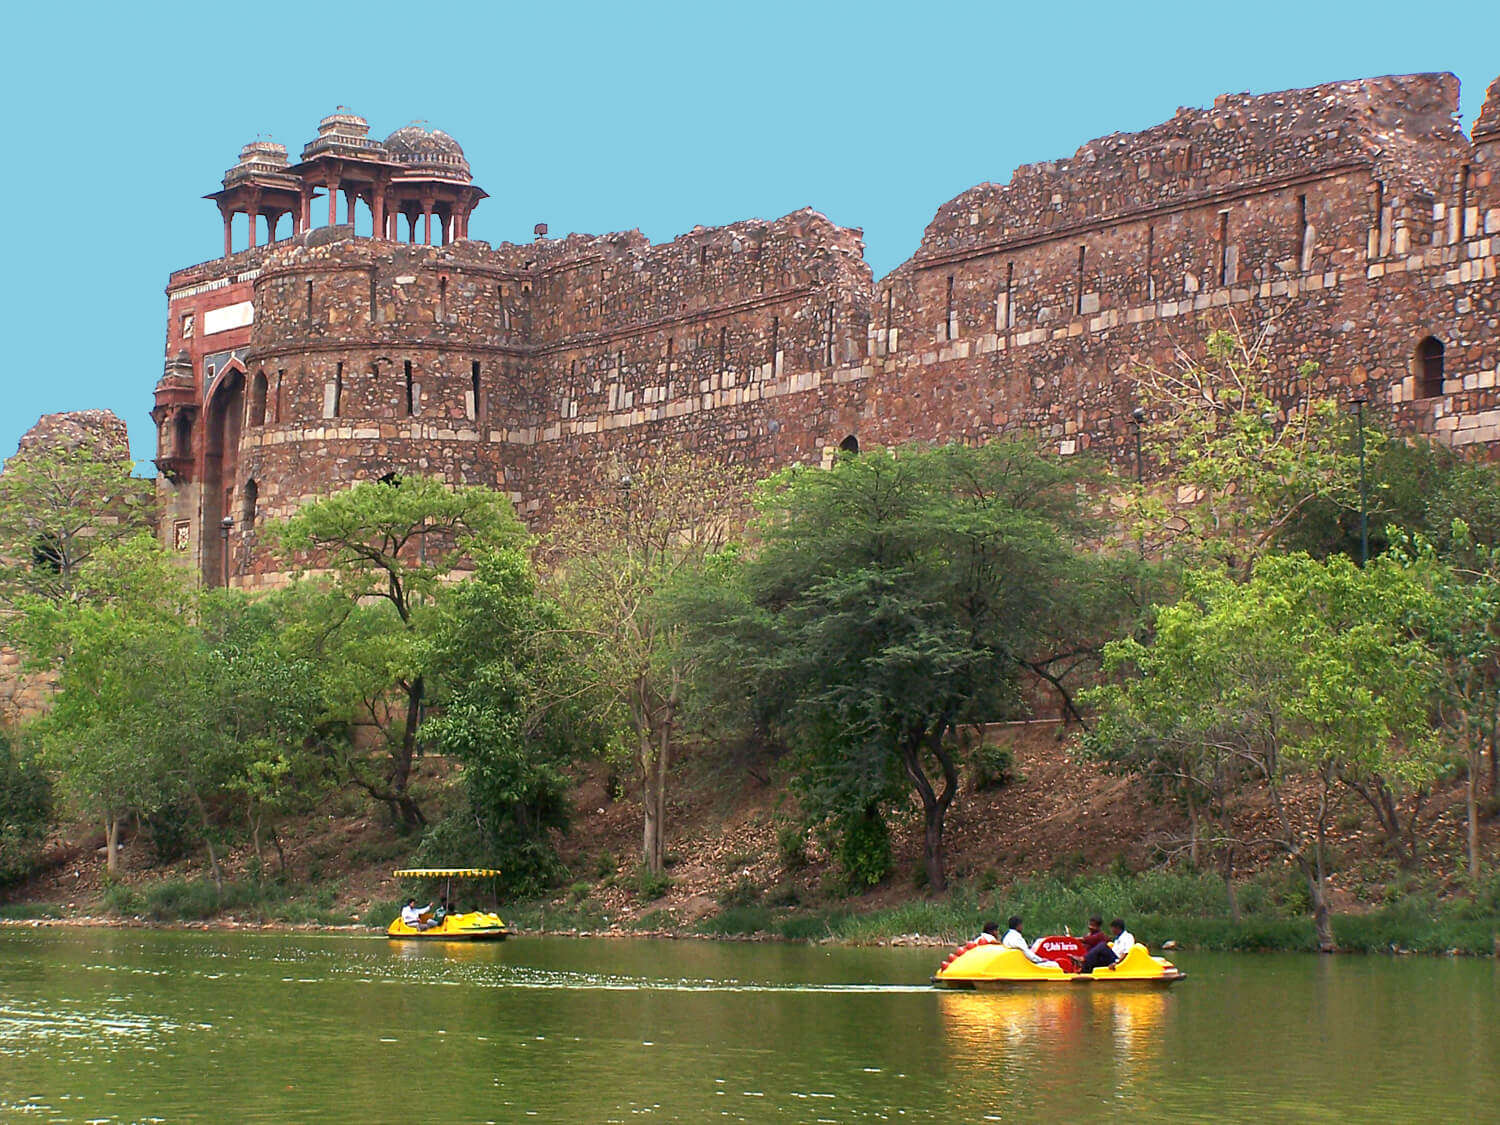 people boating in Nauka Vihar of Old Fort